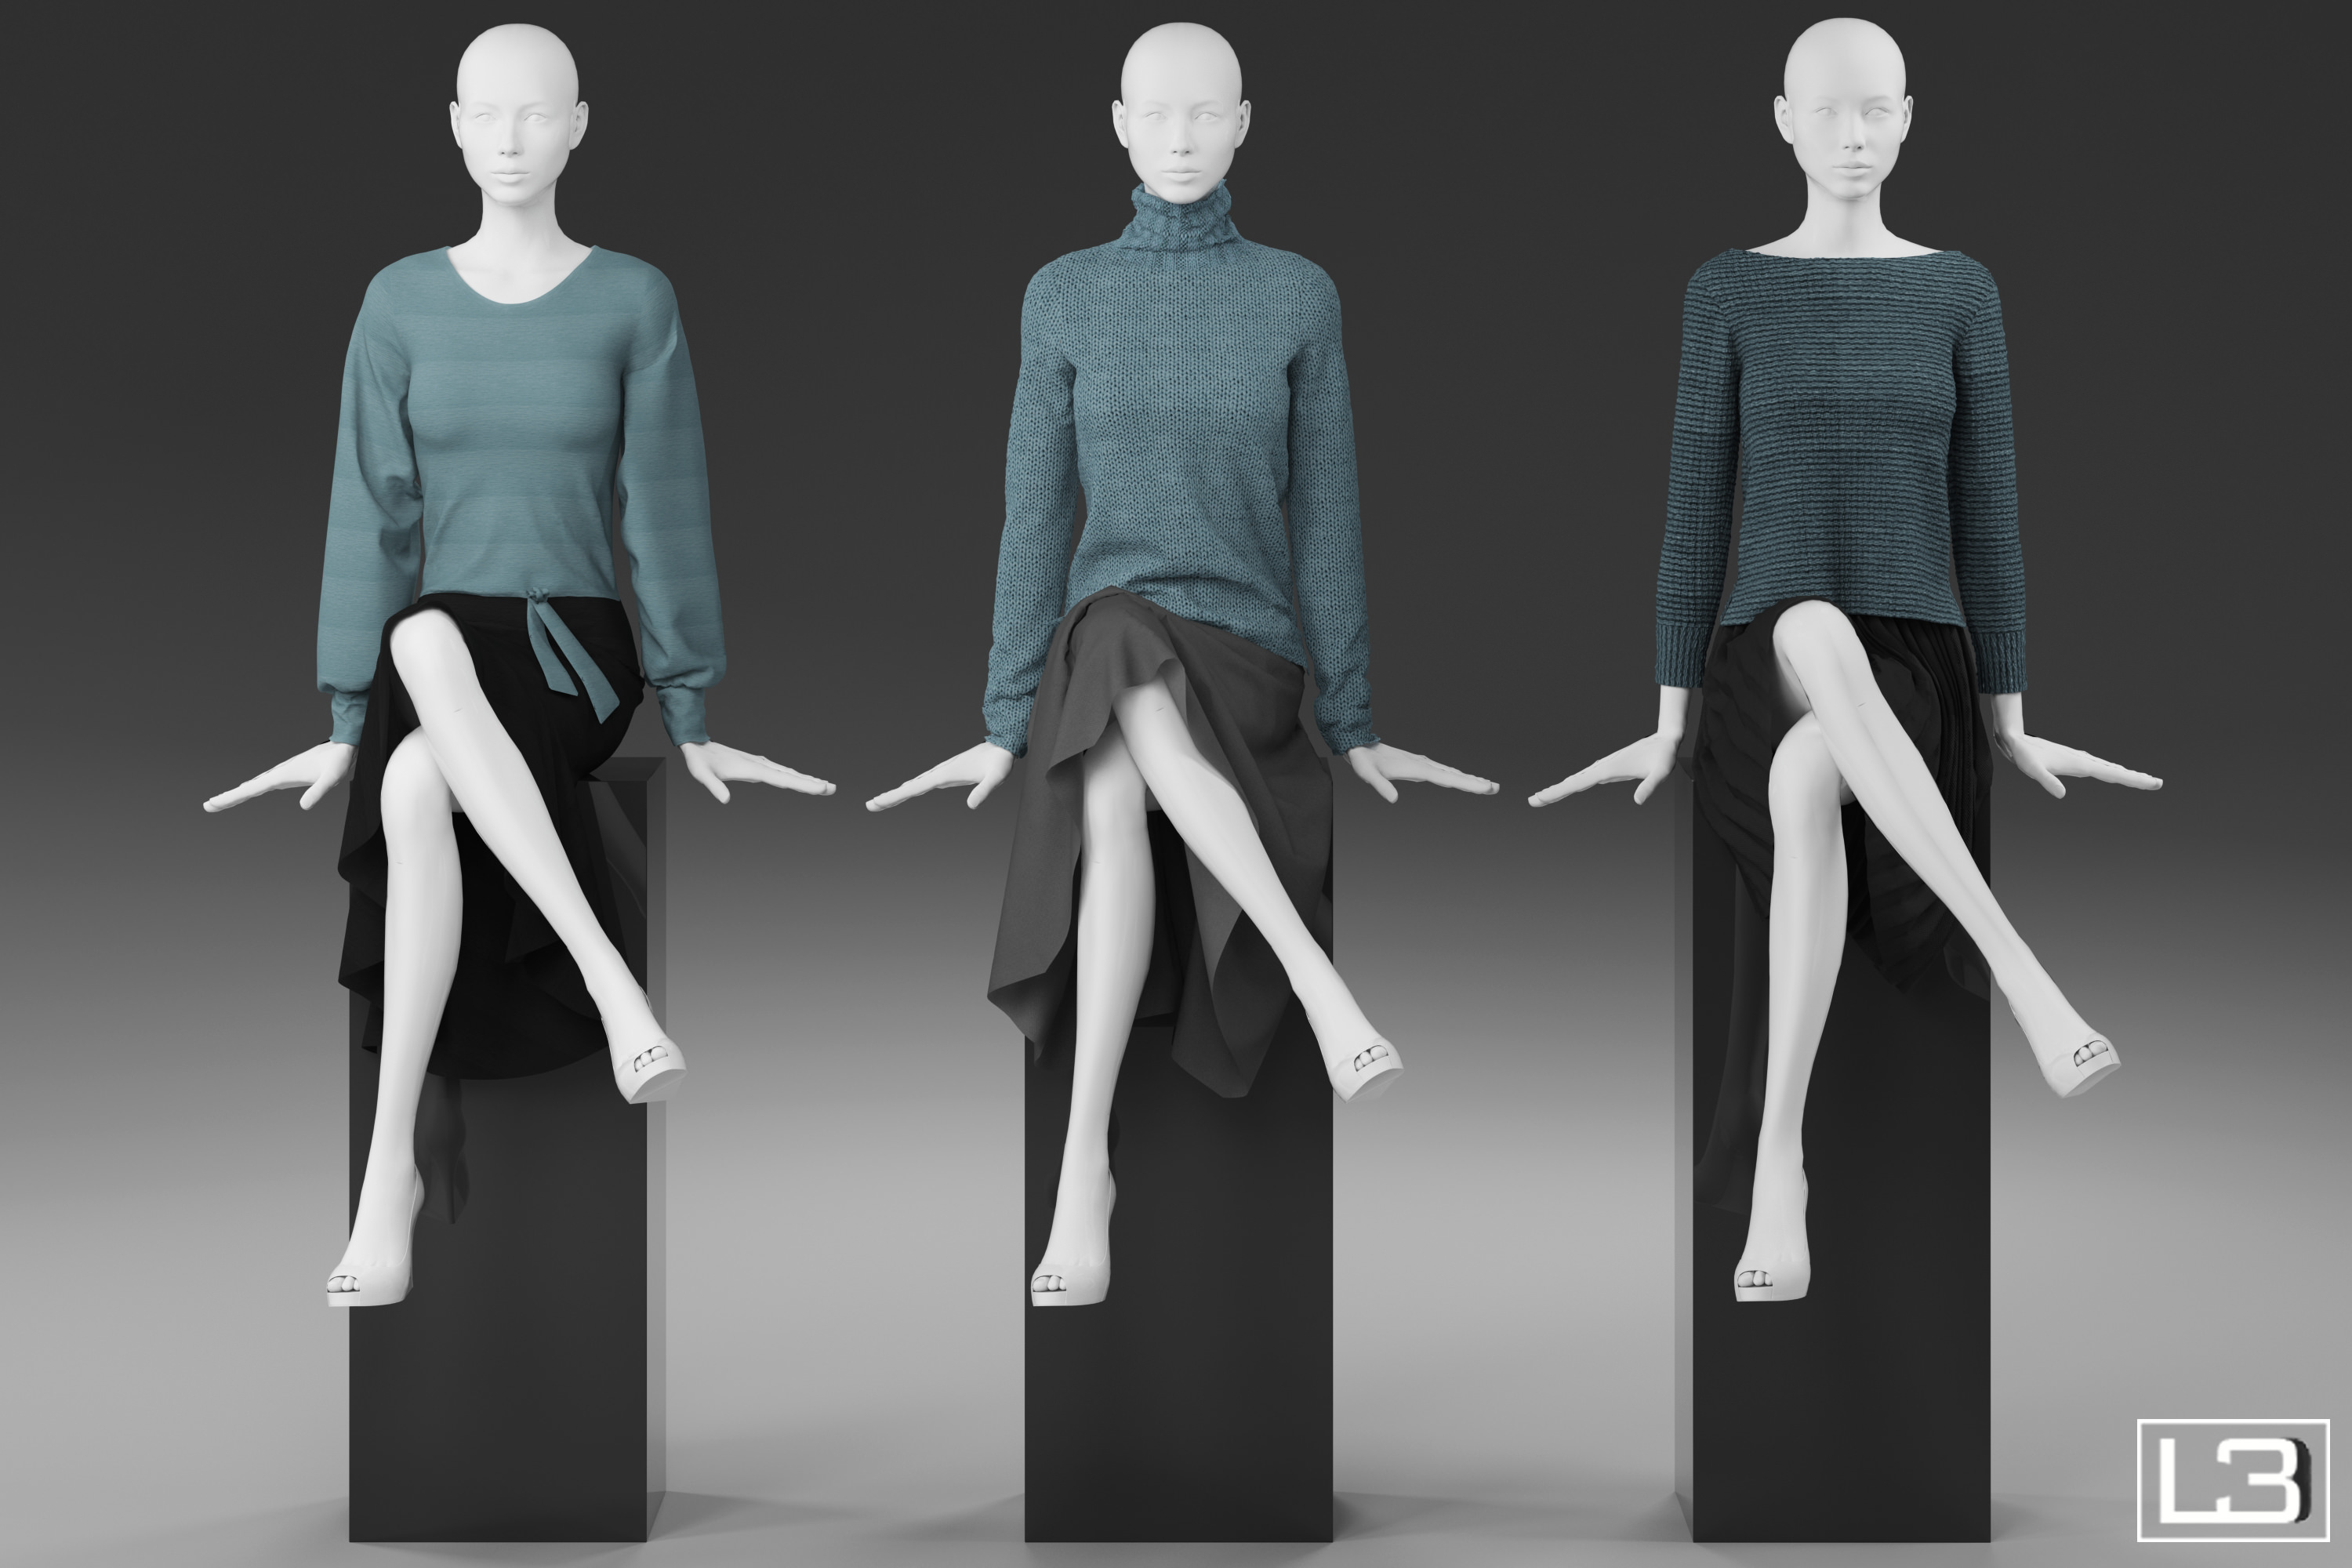 Shop Window Woman Mannequin 009 3d Models Cgtrader Com